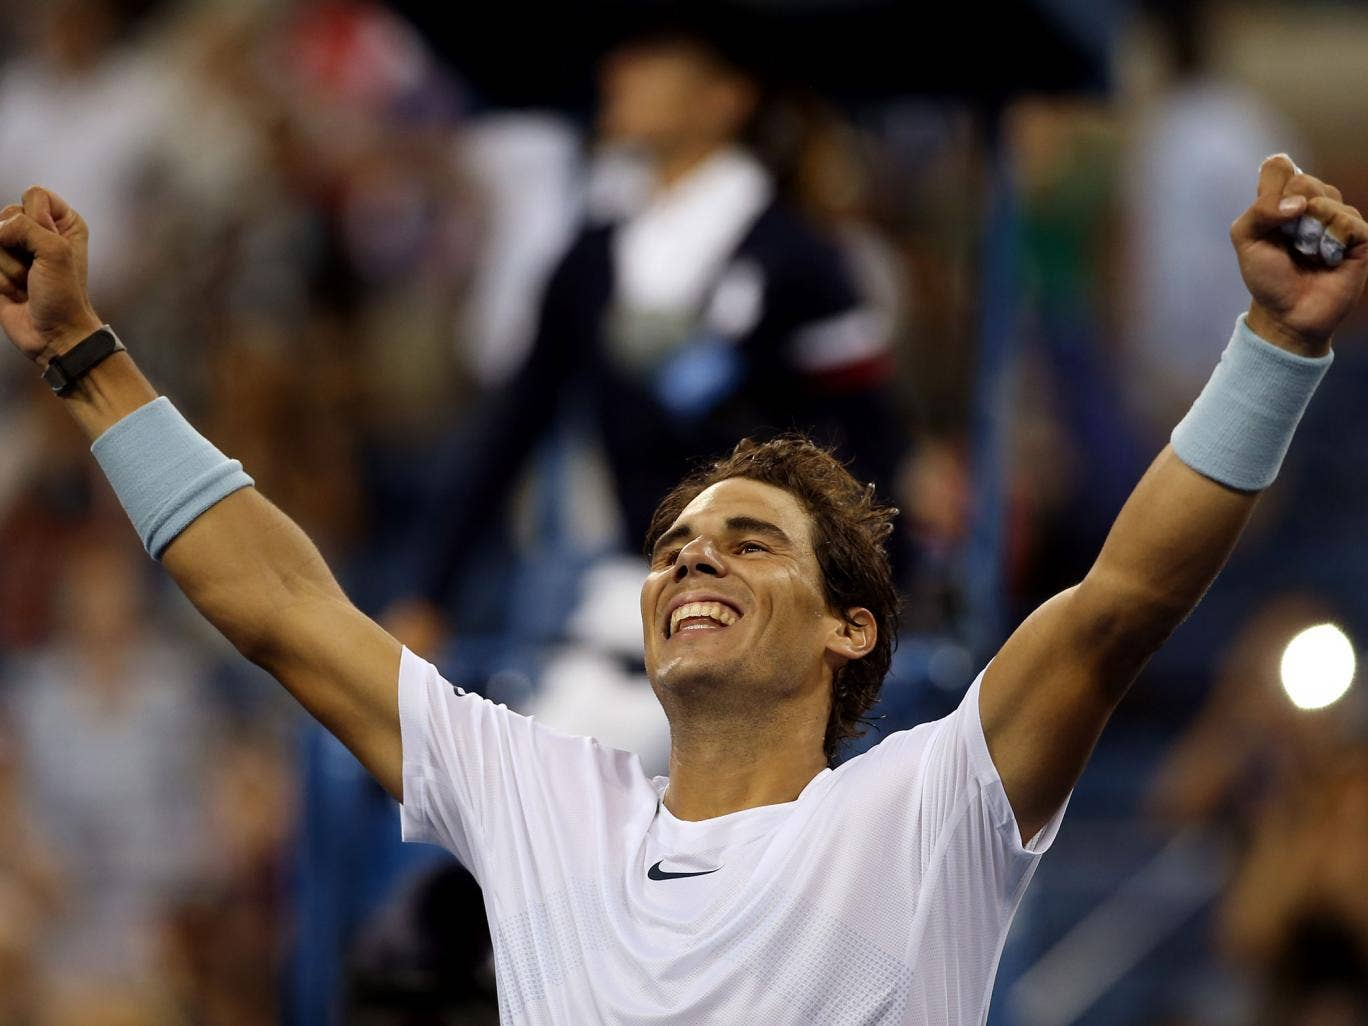 Rafael Nadal celebrates reaching the US Open final where he will face world No 1 Novak Djokovic